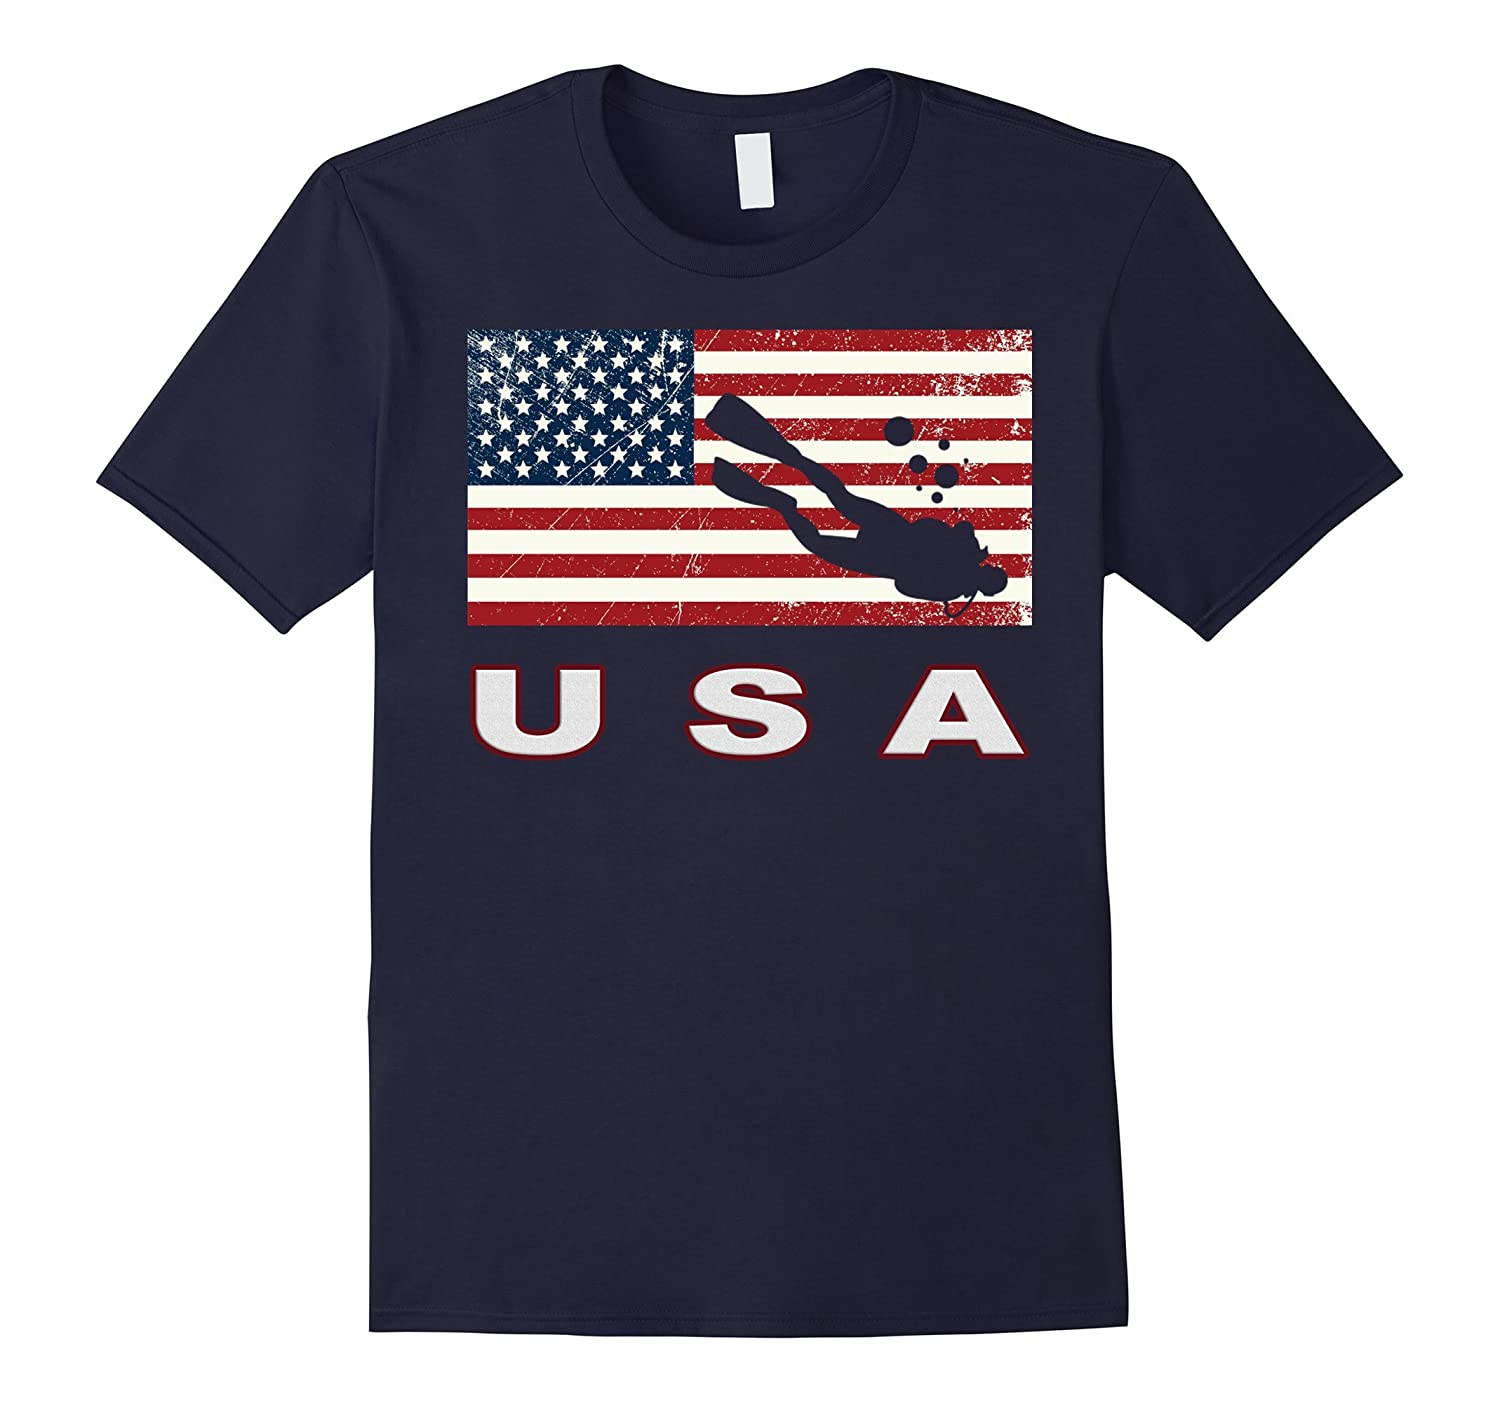 American SCUBA Shirt, USA Gift, SCUBA DIVING Team Shirts-Art